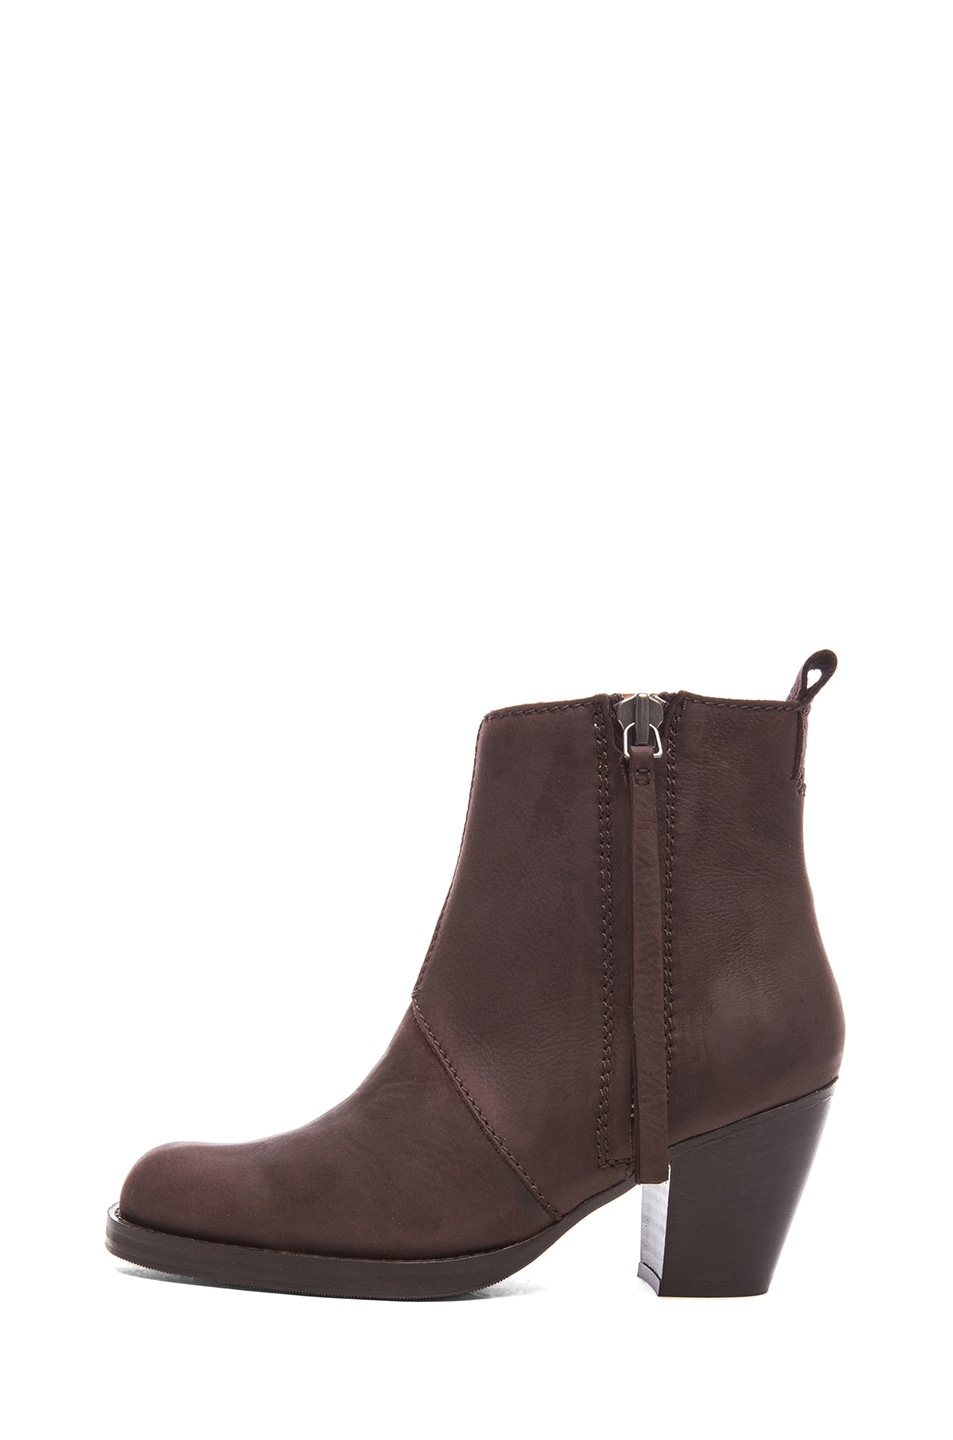 Image 1 of Acne Studios Pistol Leather Booties in Dark Brown